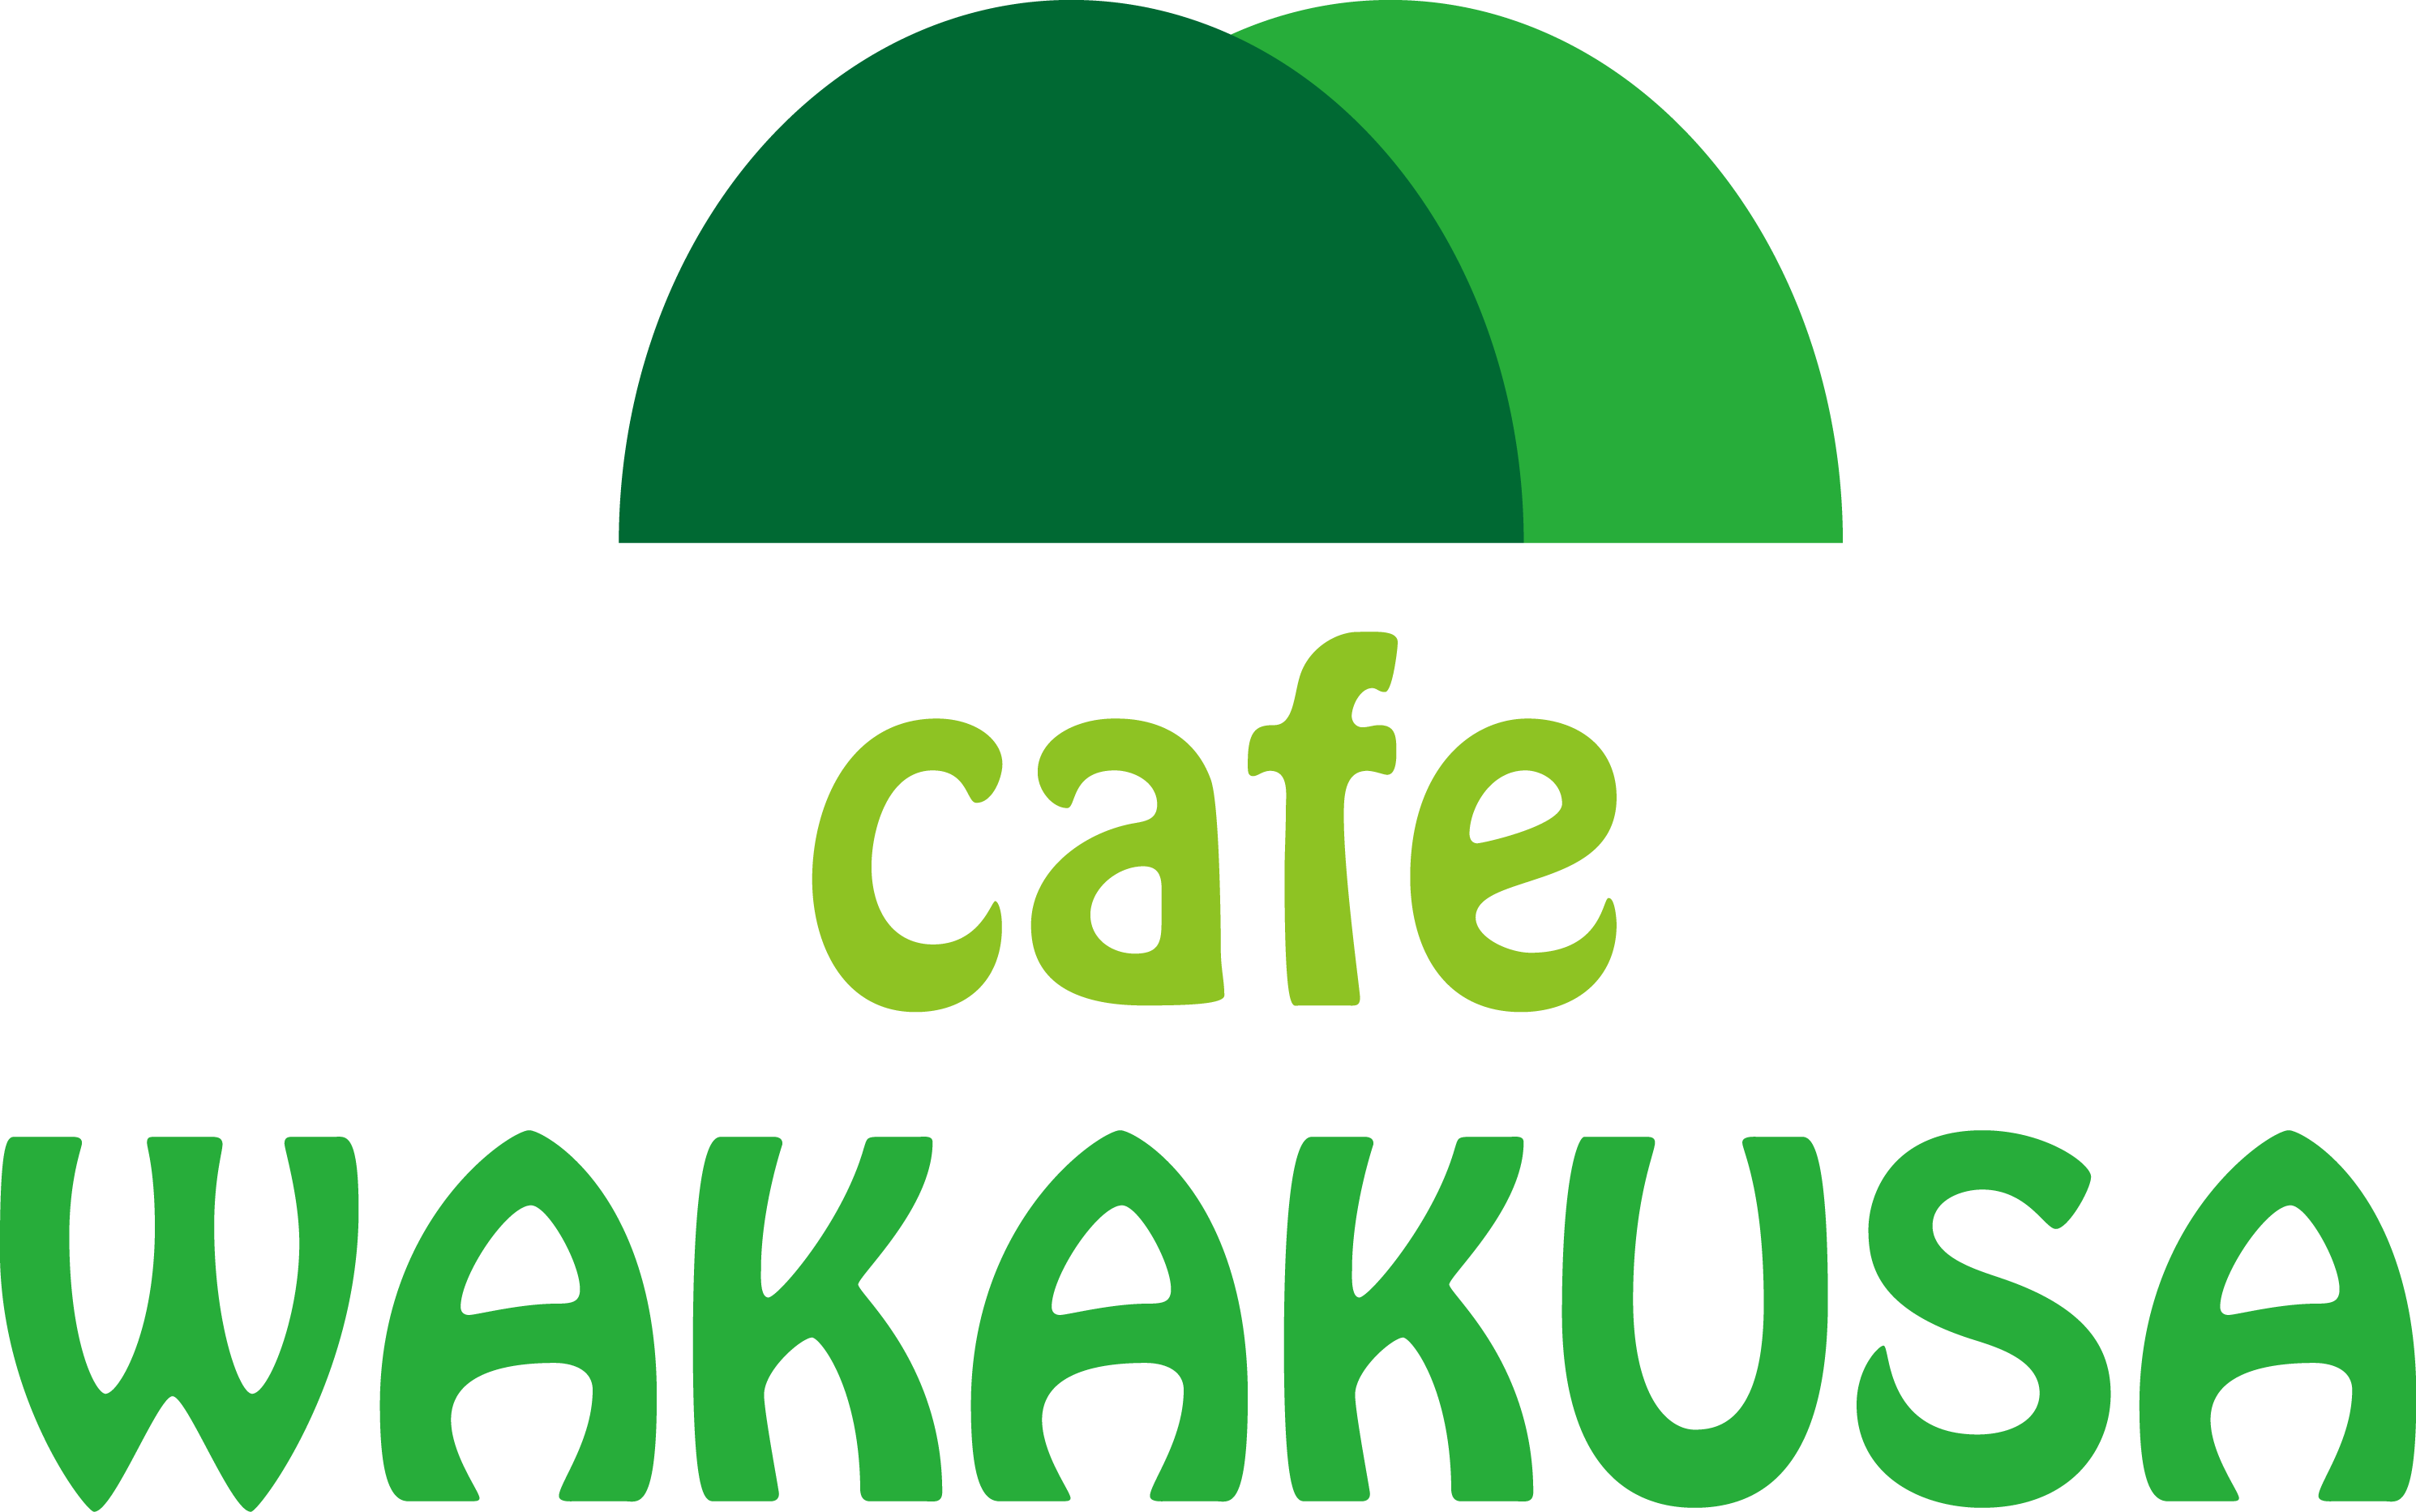 cafe WAKAKUSA, a small cafe in Nara, Japan since 2008